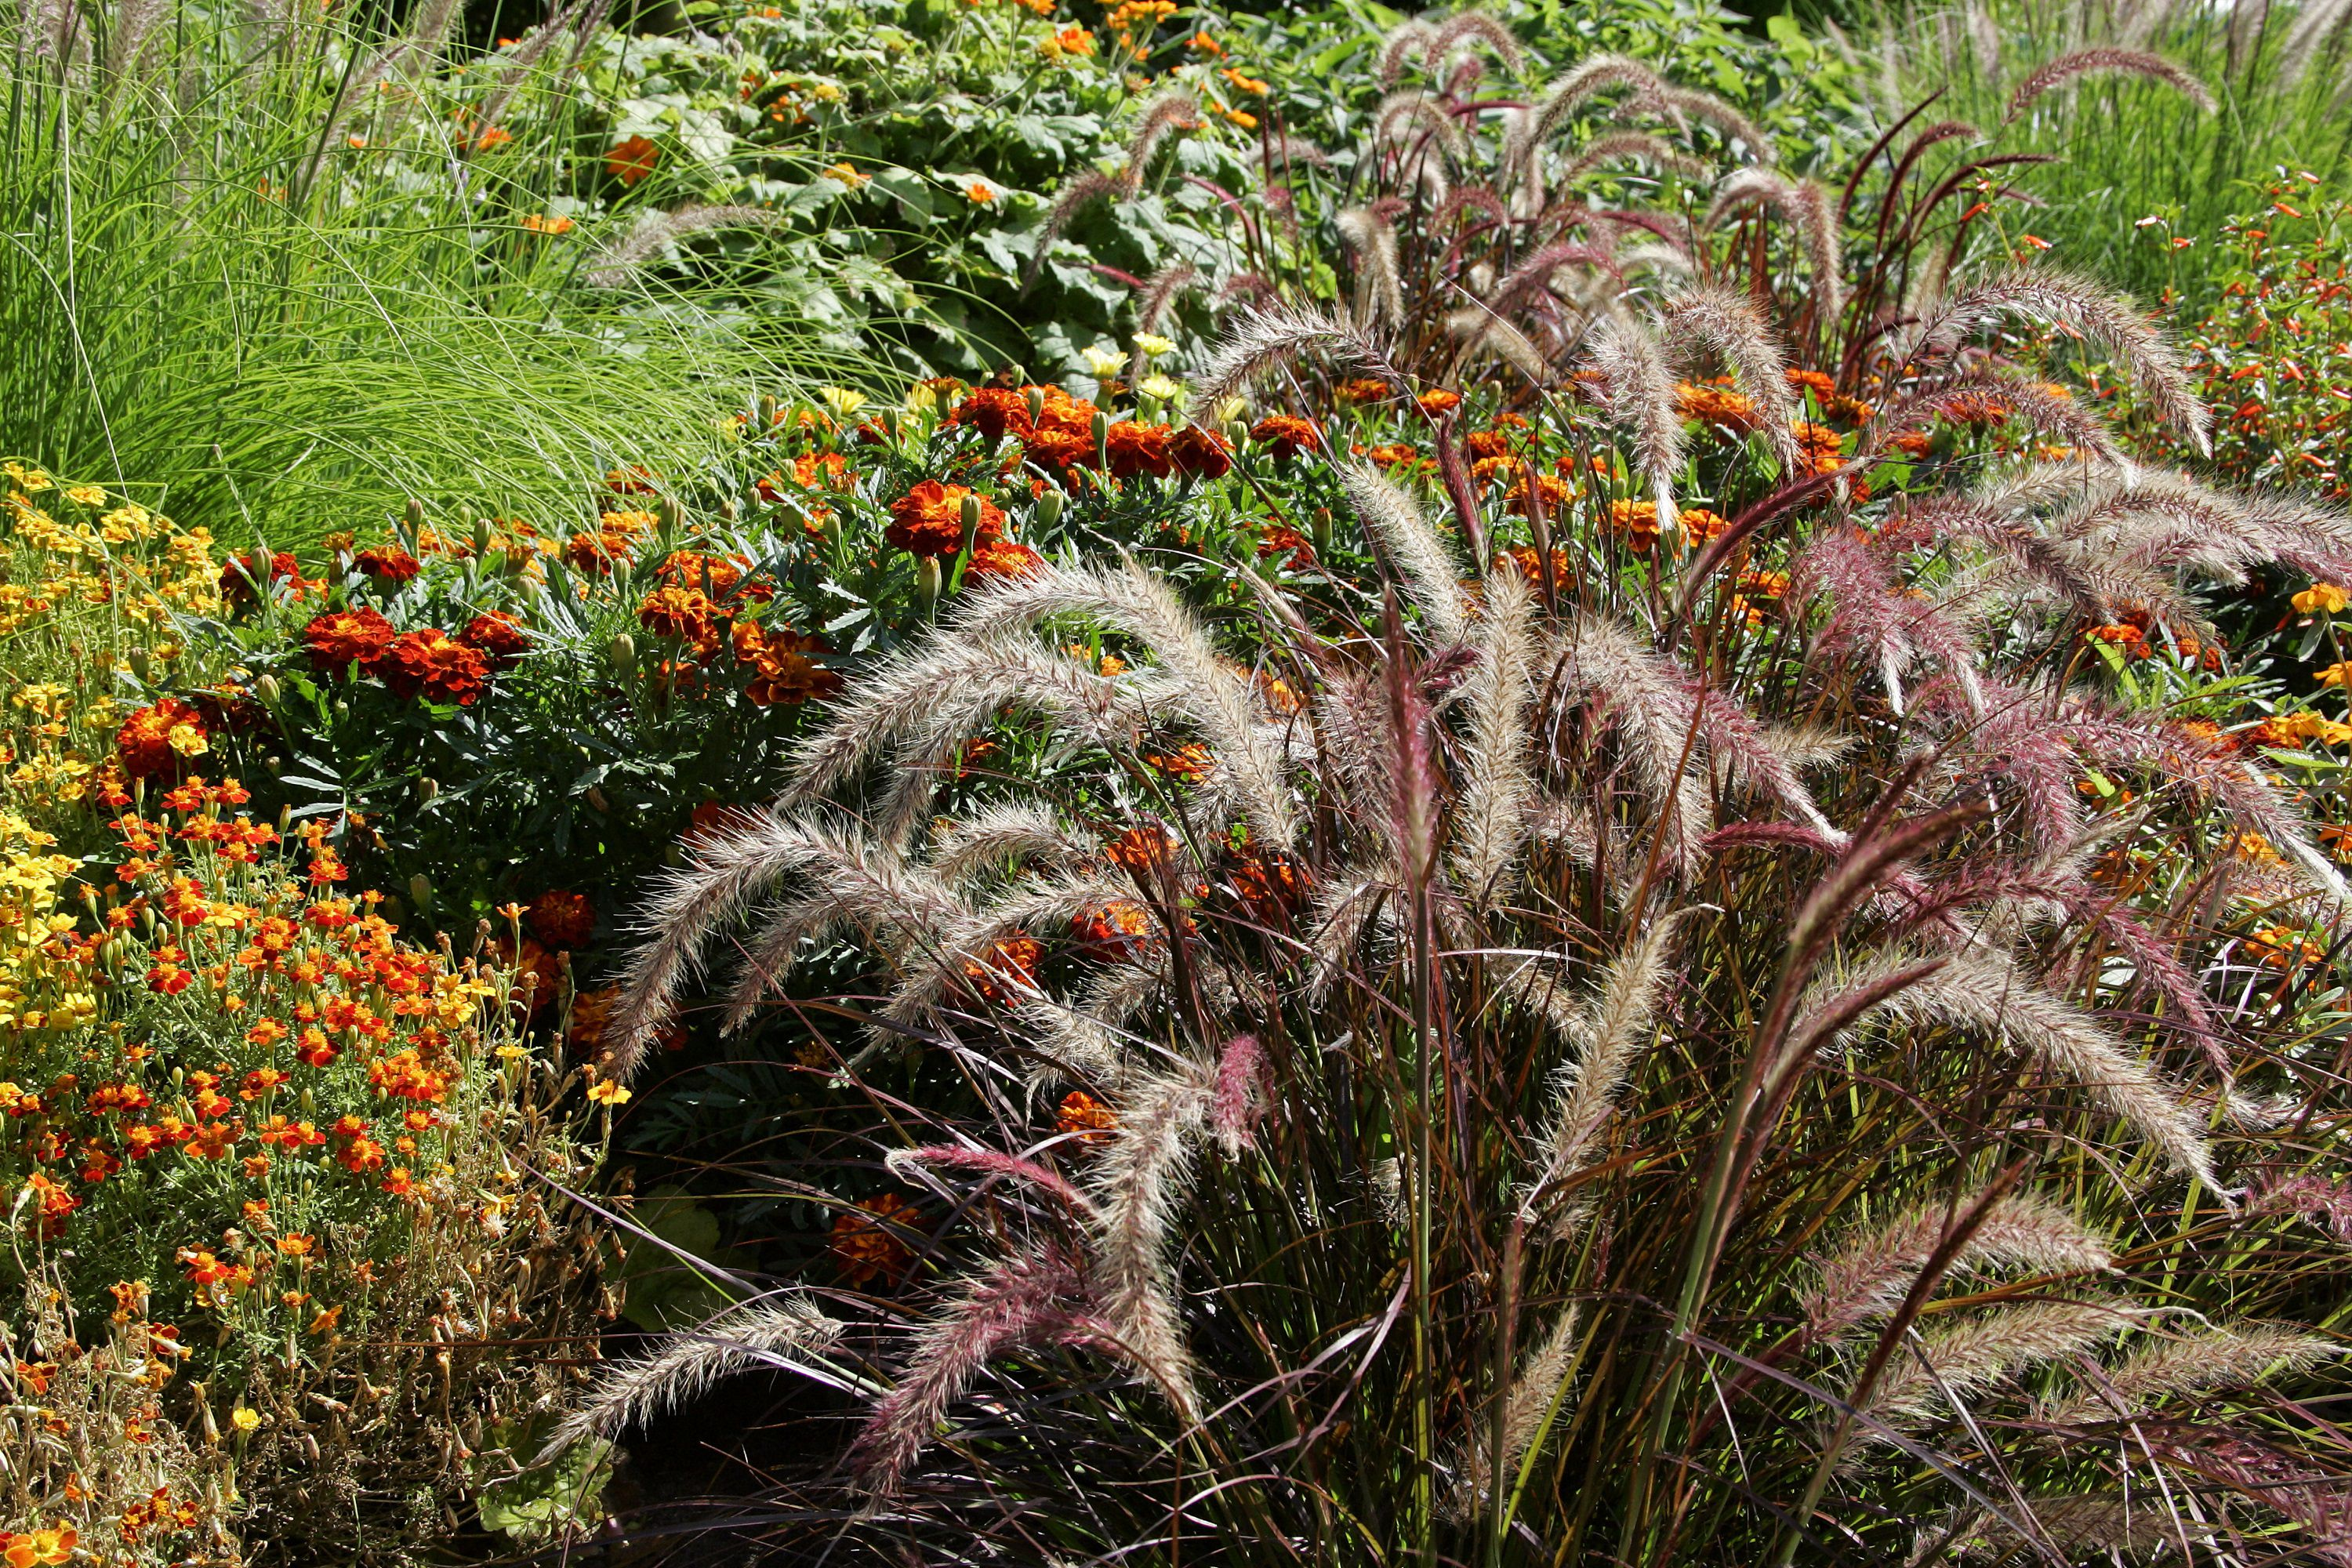 Ornamental grasses care and maintenance for Wild ornamental grasses